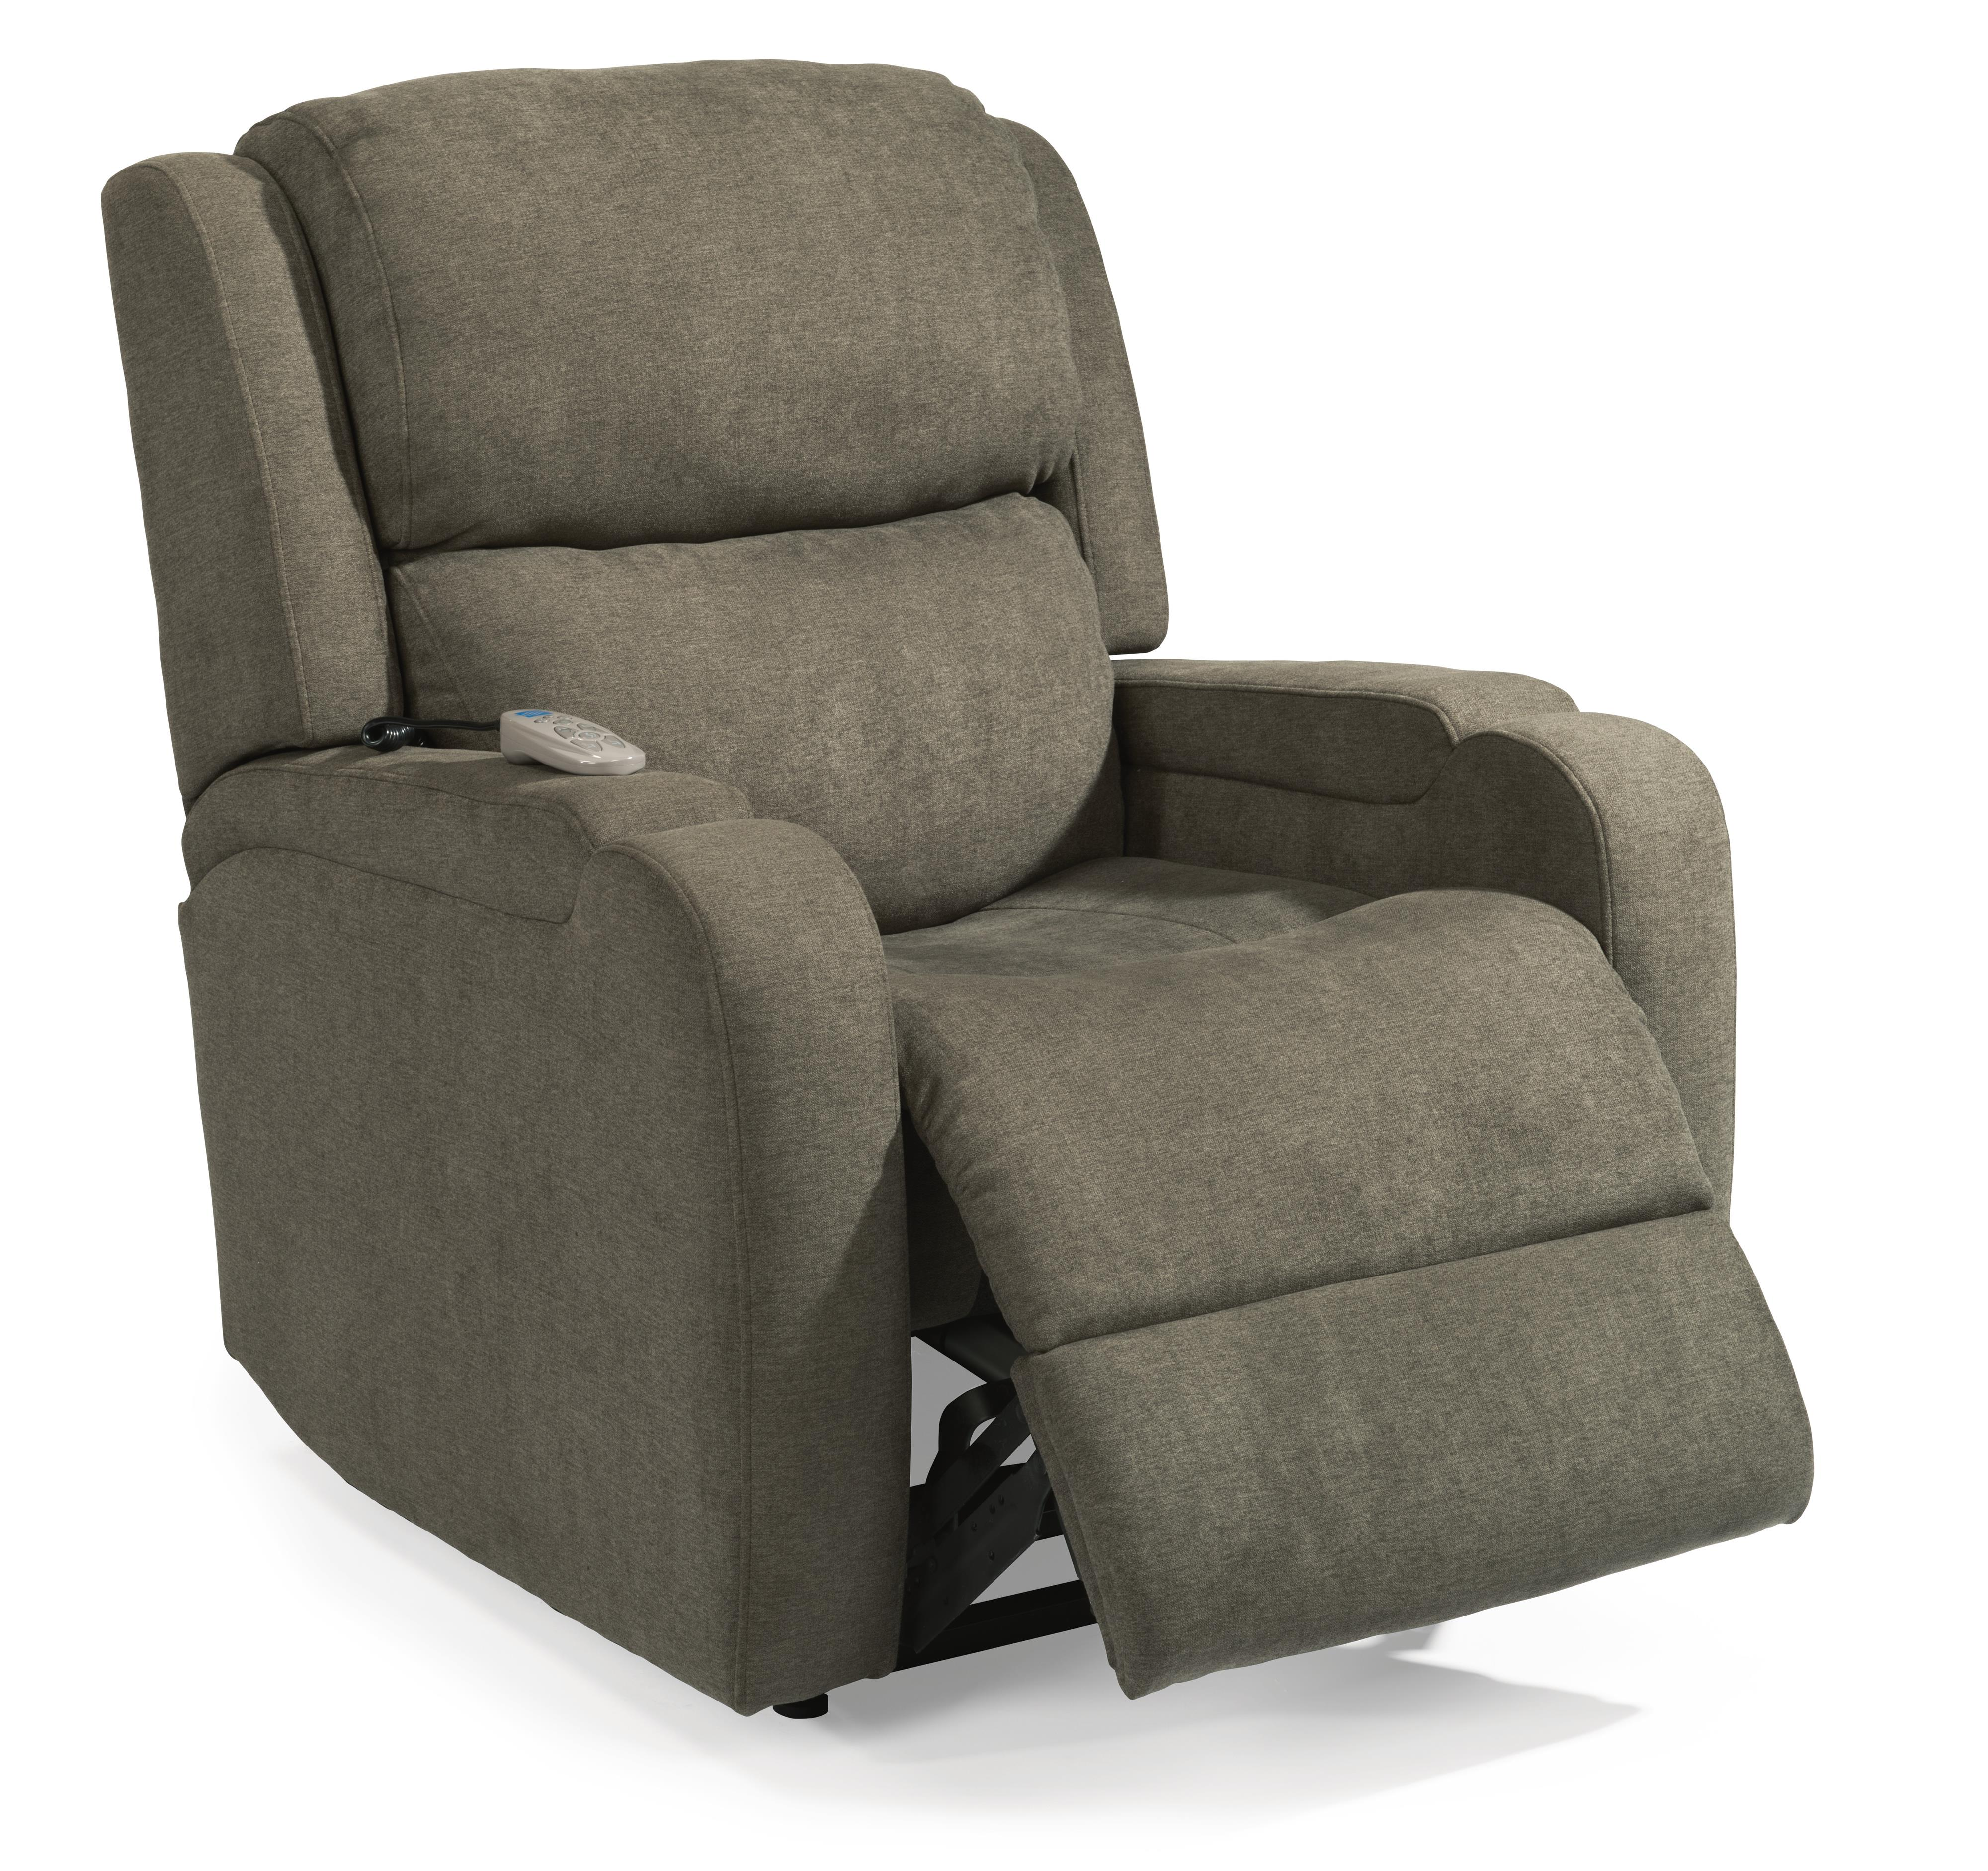 Flexsteel Latitudes Lift Chairs Melody Lift Recliner - Item Number: 1902-55-414-02